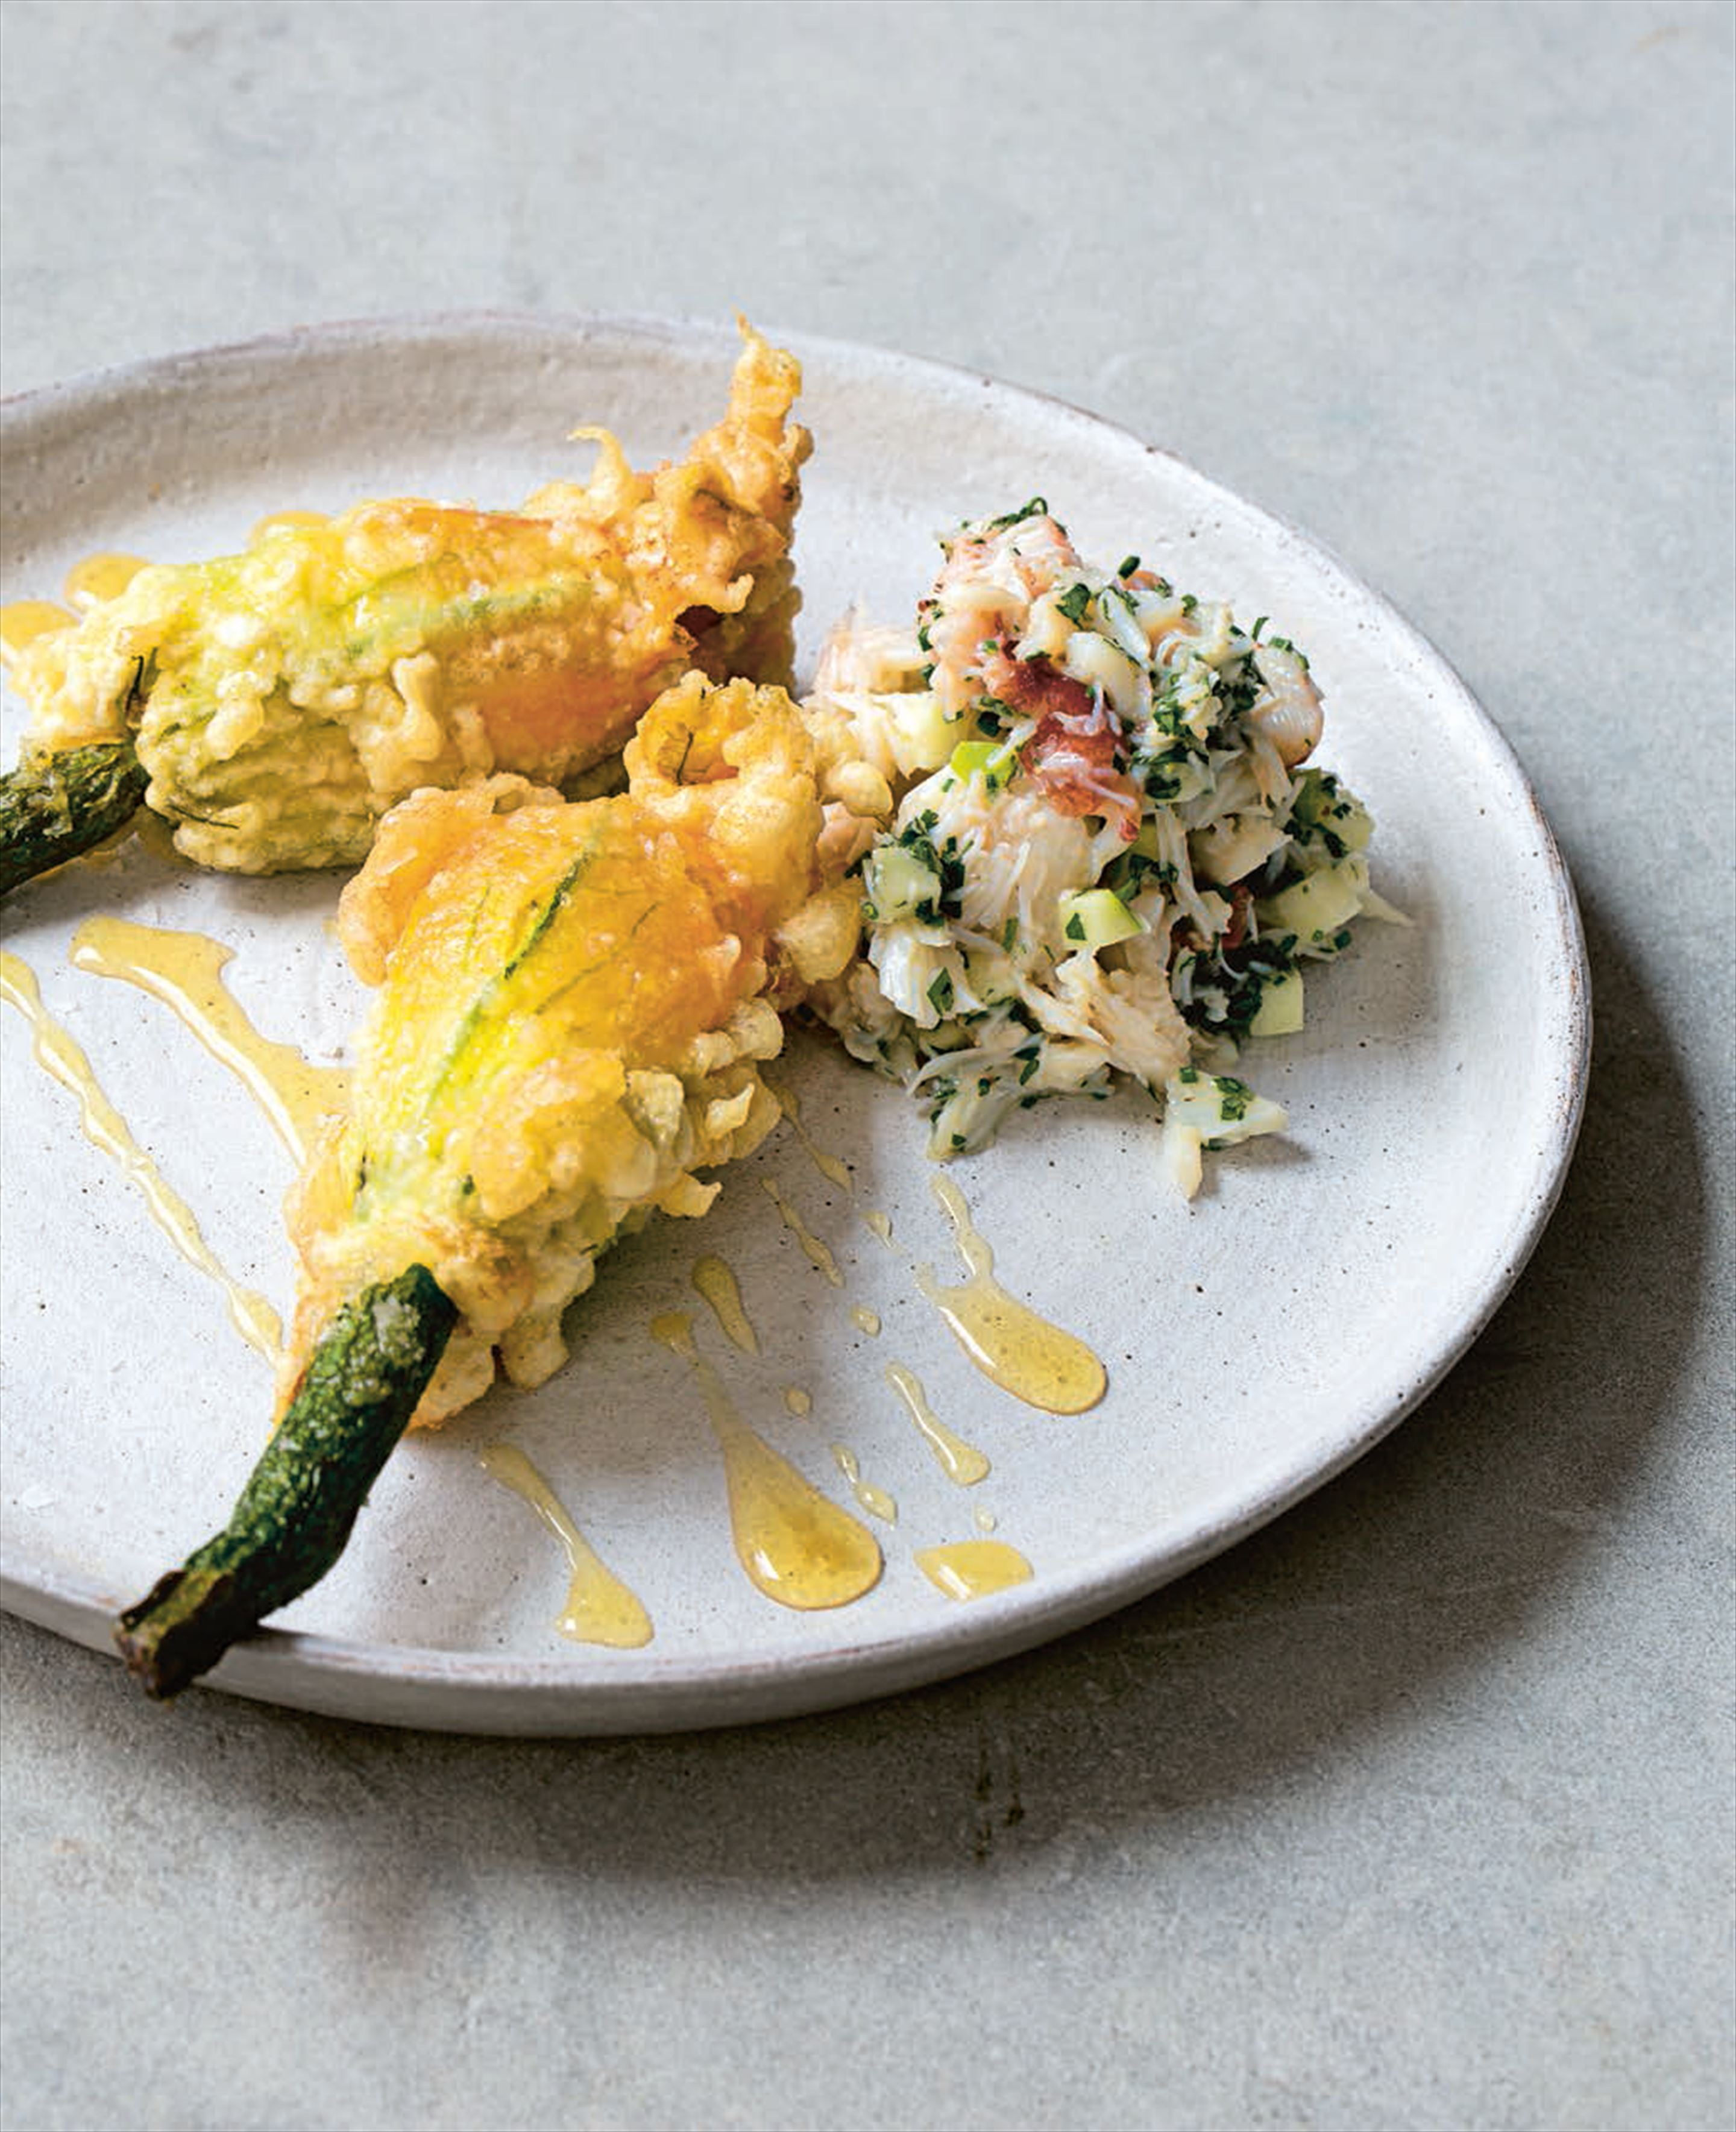 Goat's-cheese-stuffed courgette flowers with apple and coriander crab salad